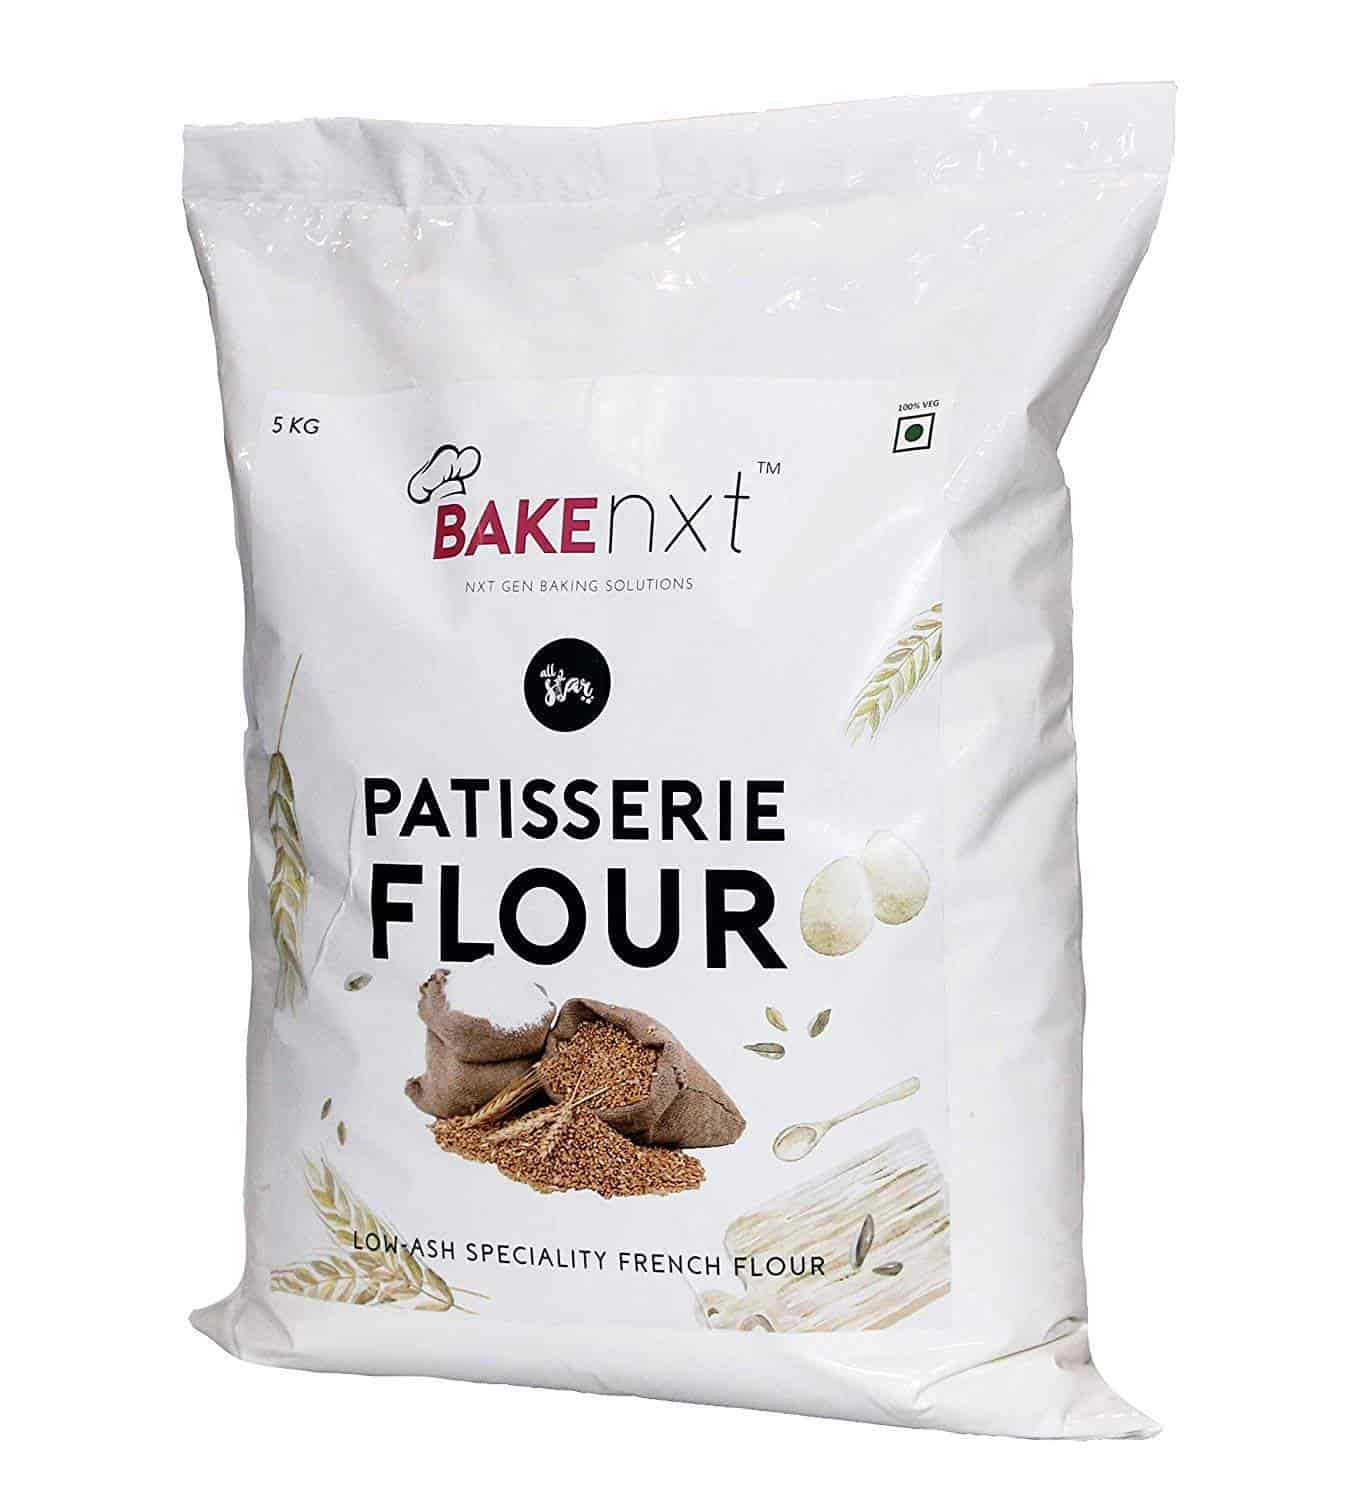 Bakenxt All Star Patisserie Flour 5 kg, Features, Price, Reviews Online in  India - Justdial